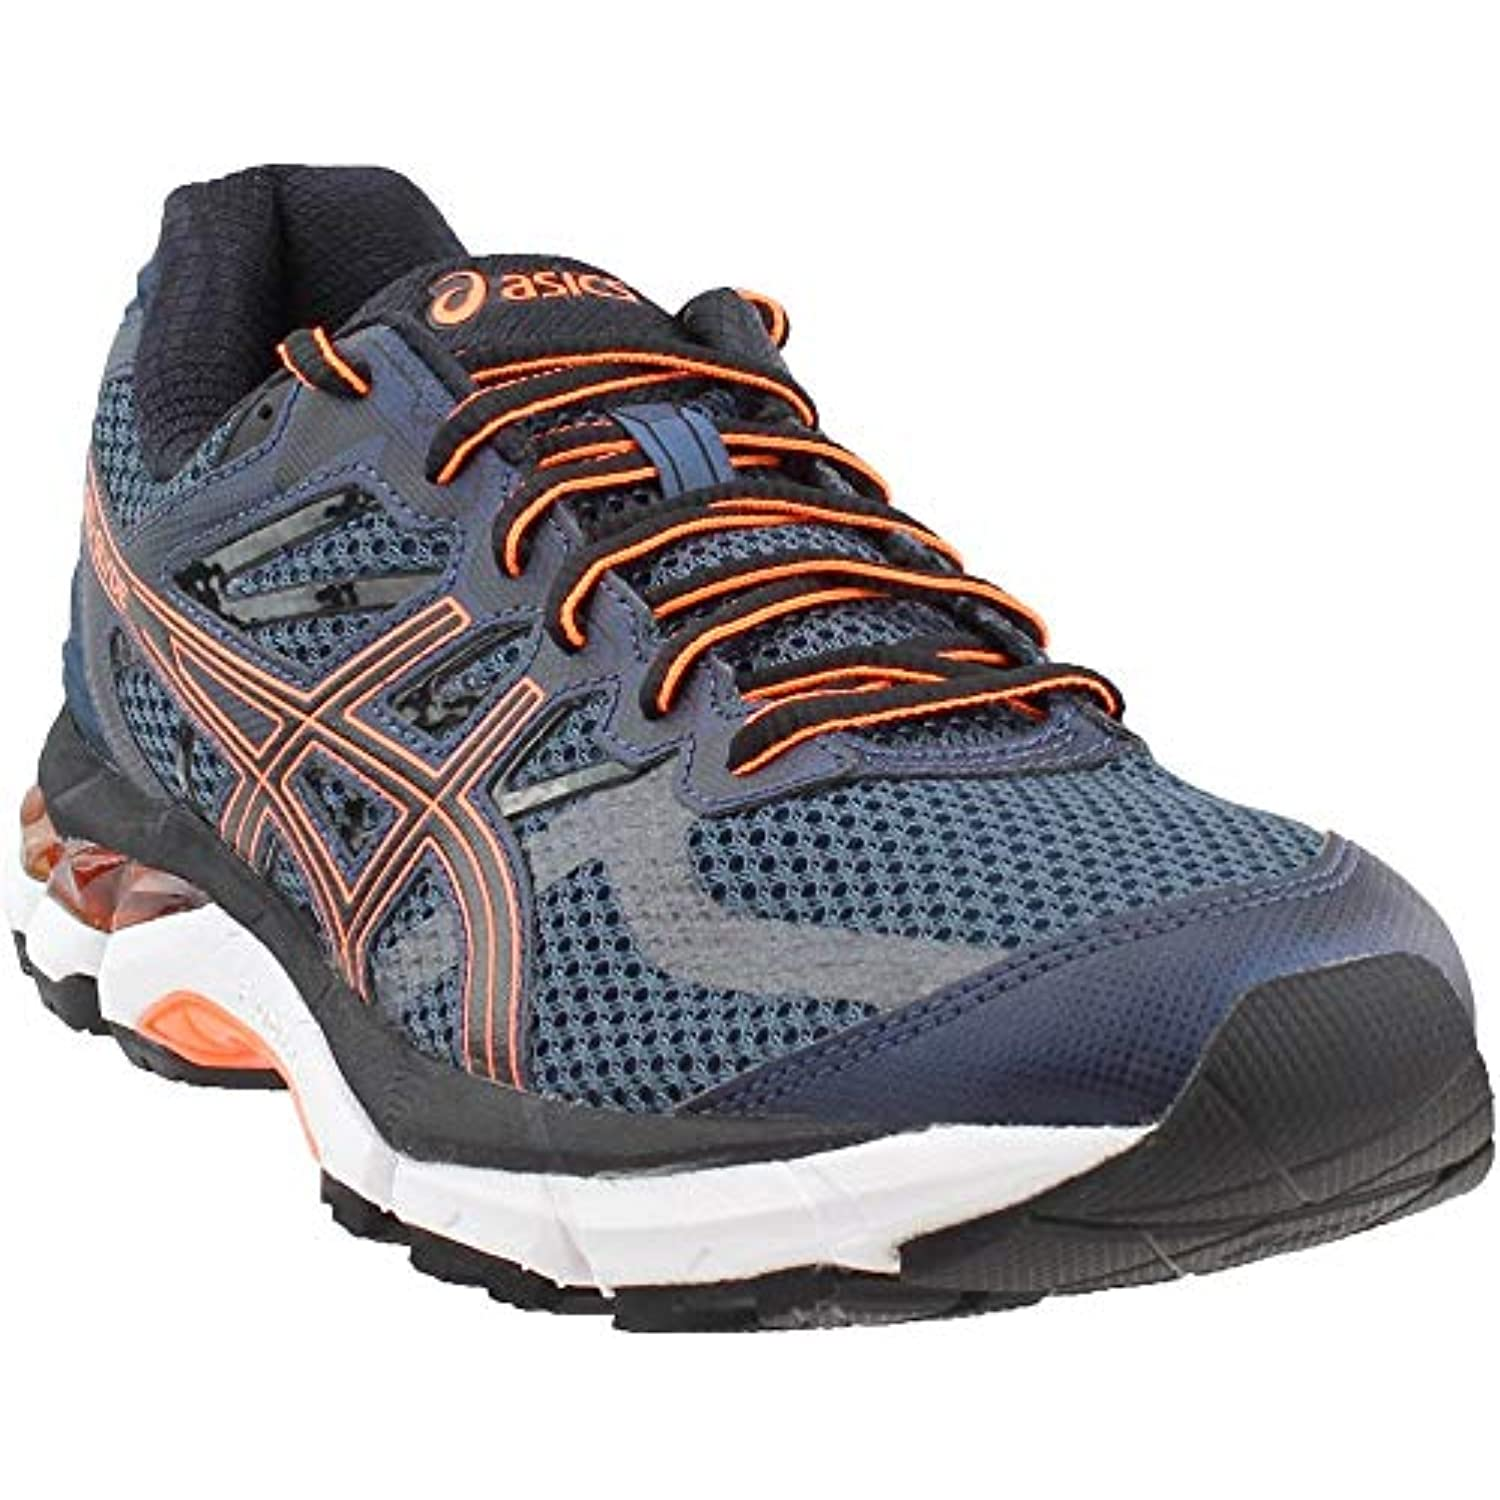 ASICS - Chaussures Gel-Glyde Gel-Glyde Chaussures pour Homme - B077H3G8JZ - 1f9350